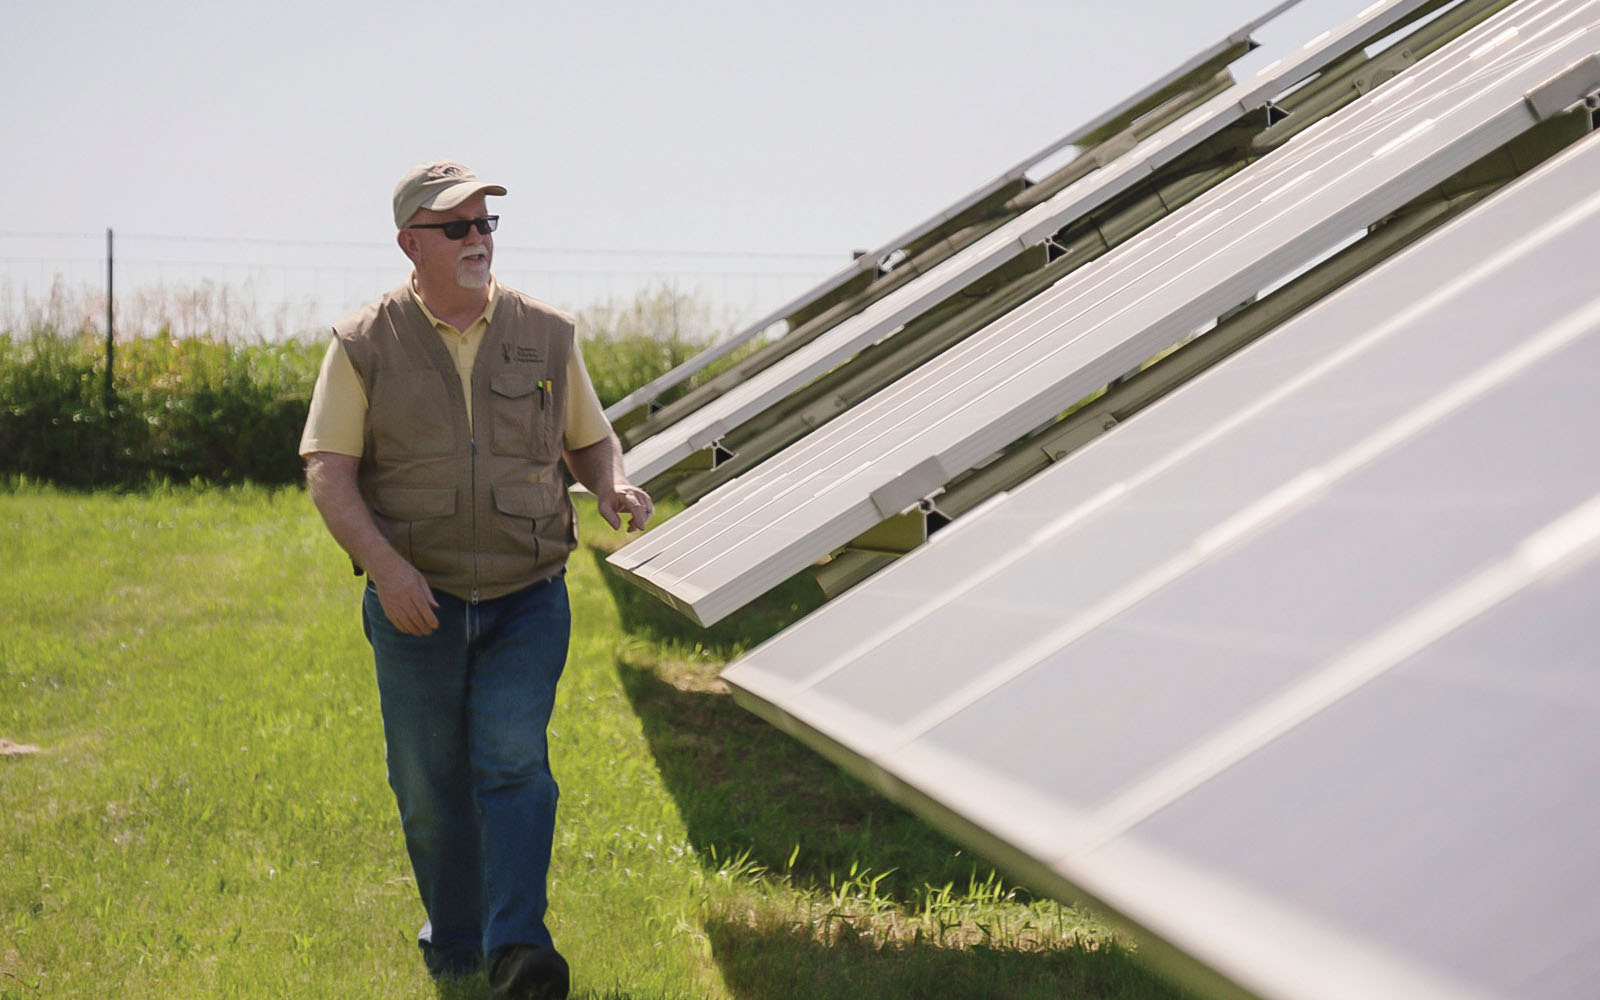 Scene from the documentary, visiting a solar farm at Farmers Electric Cooperative in Kalona, Iowa.